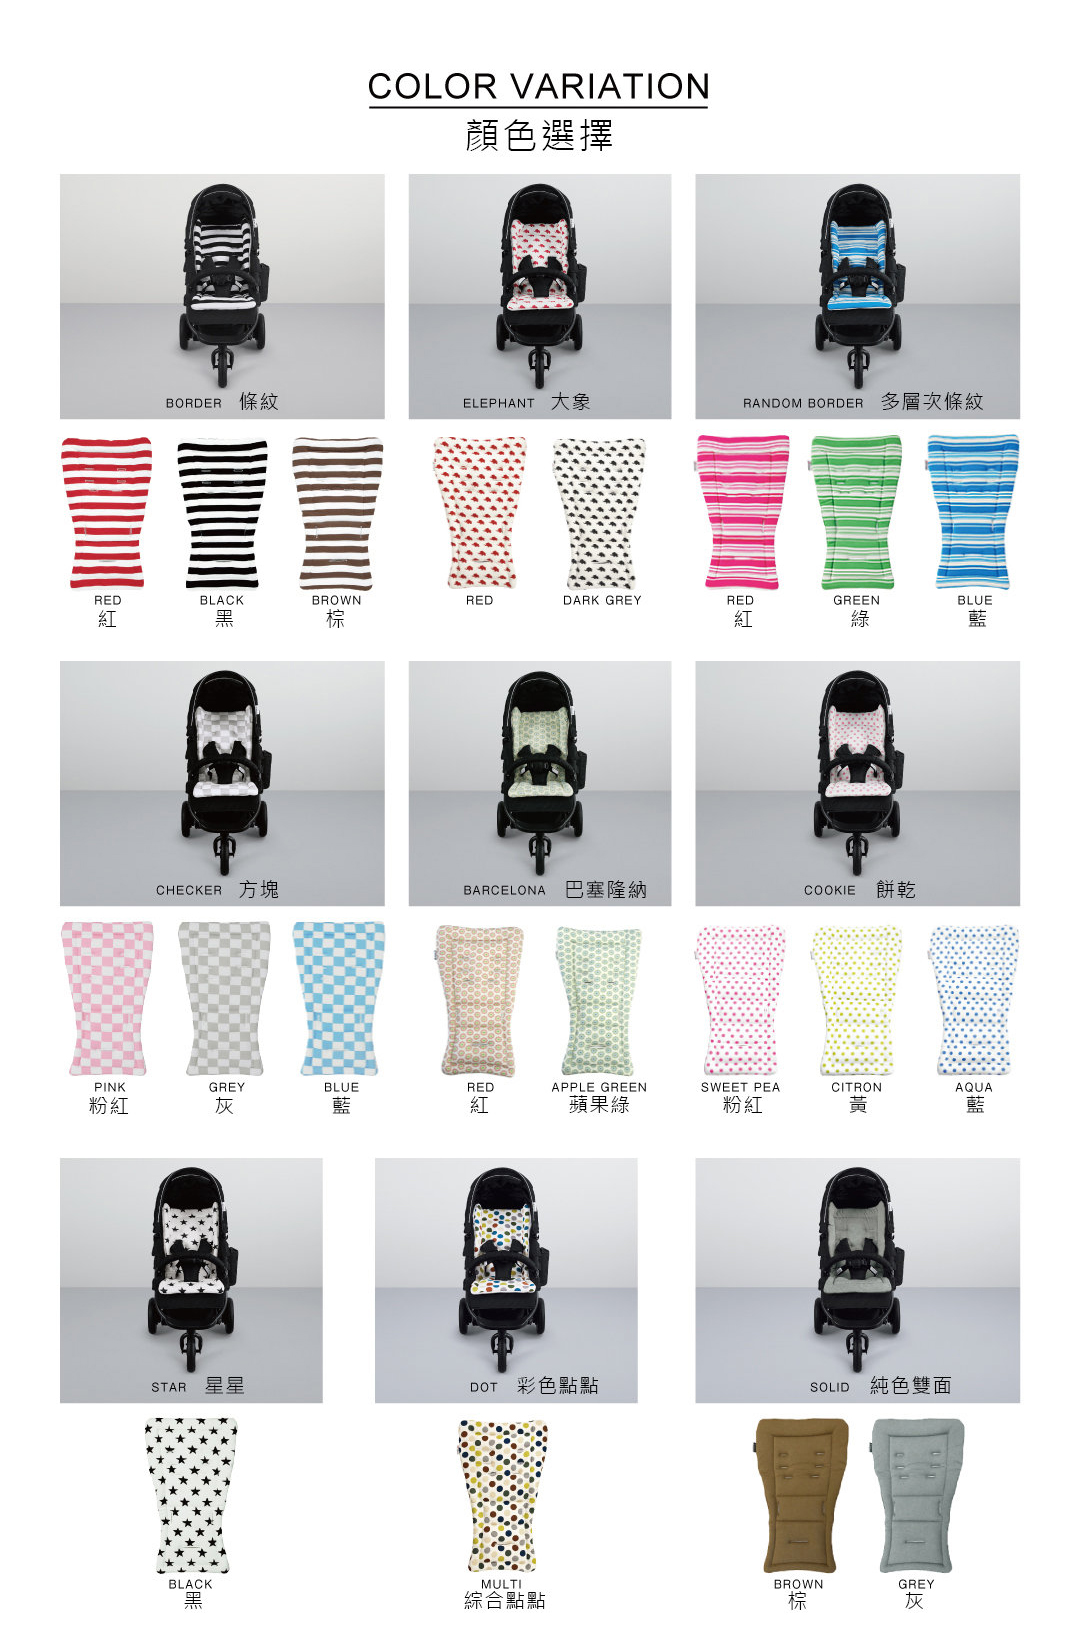 airbuggy-stroller-mat-2016-info02